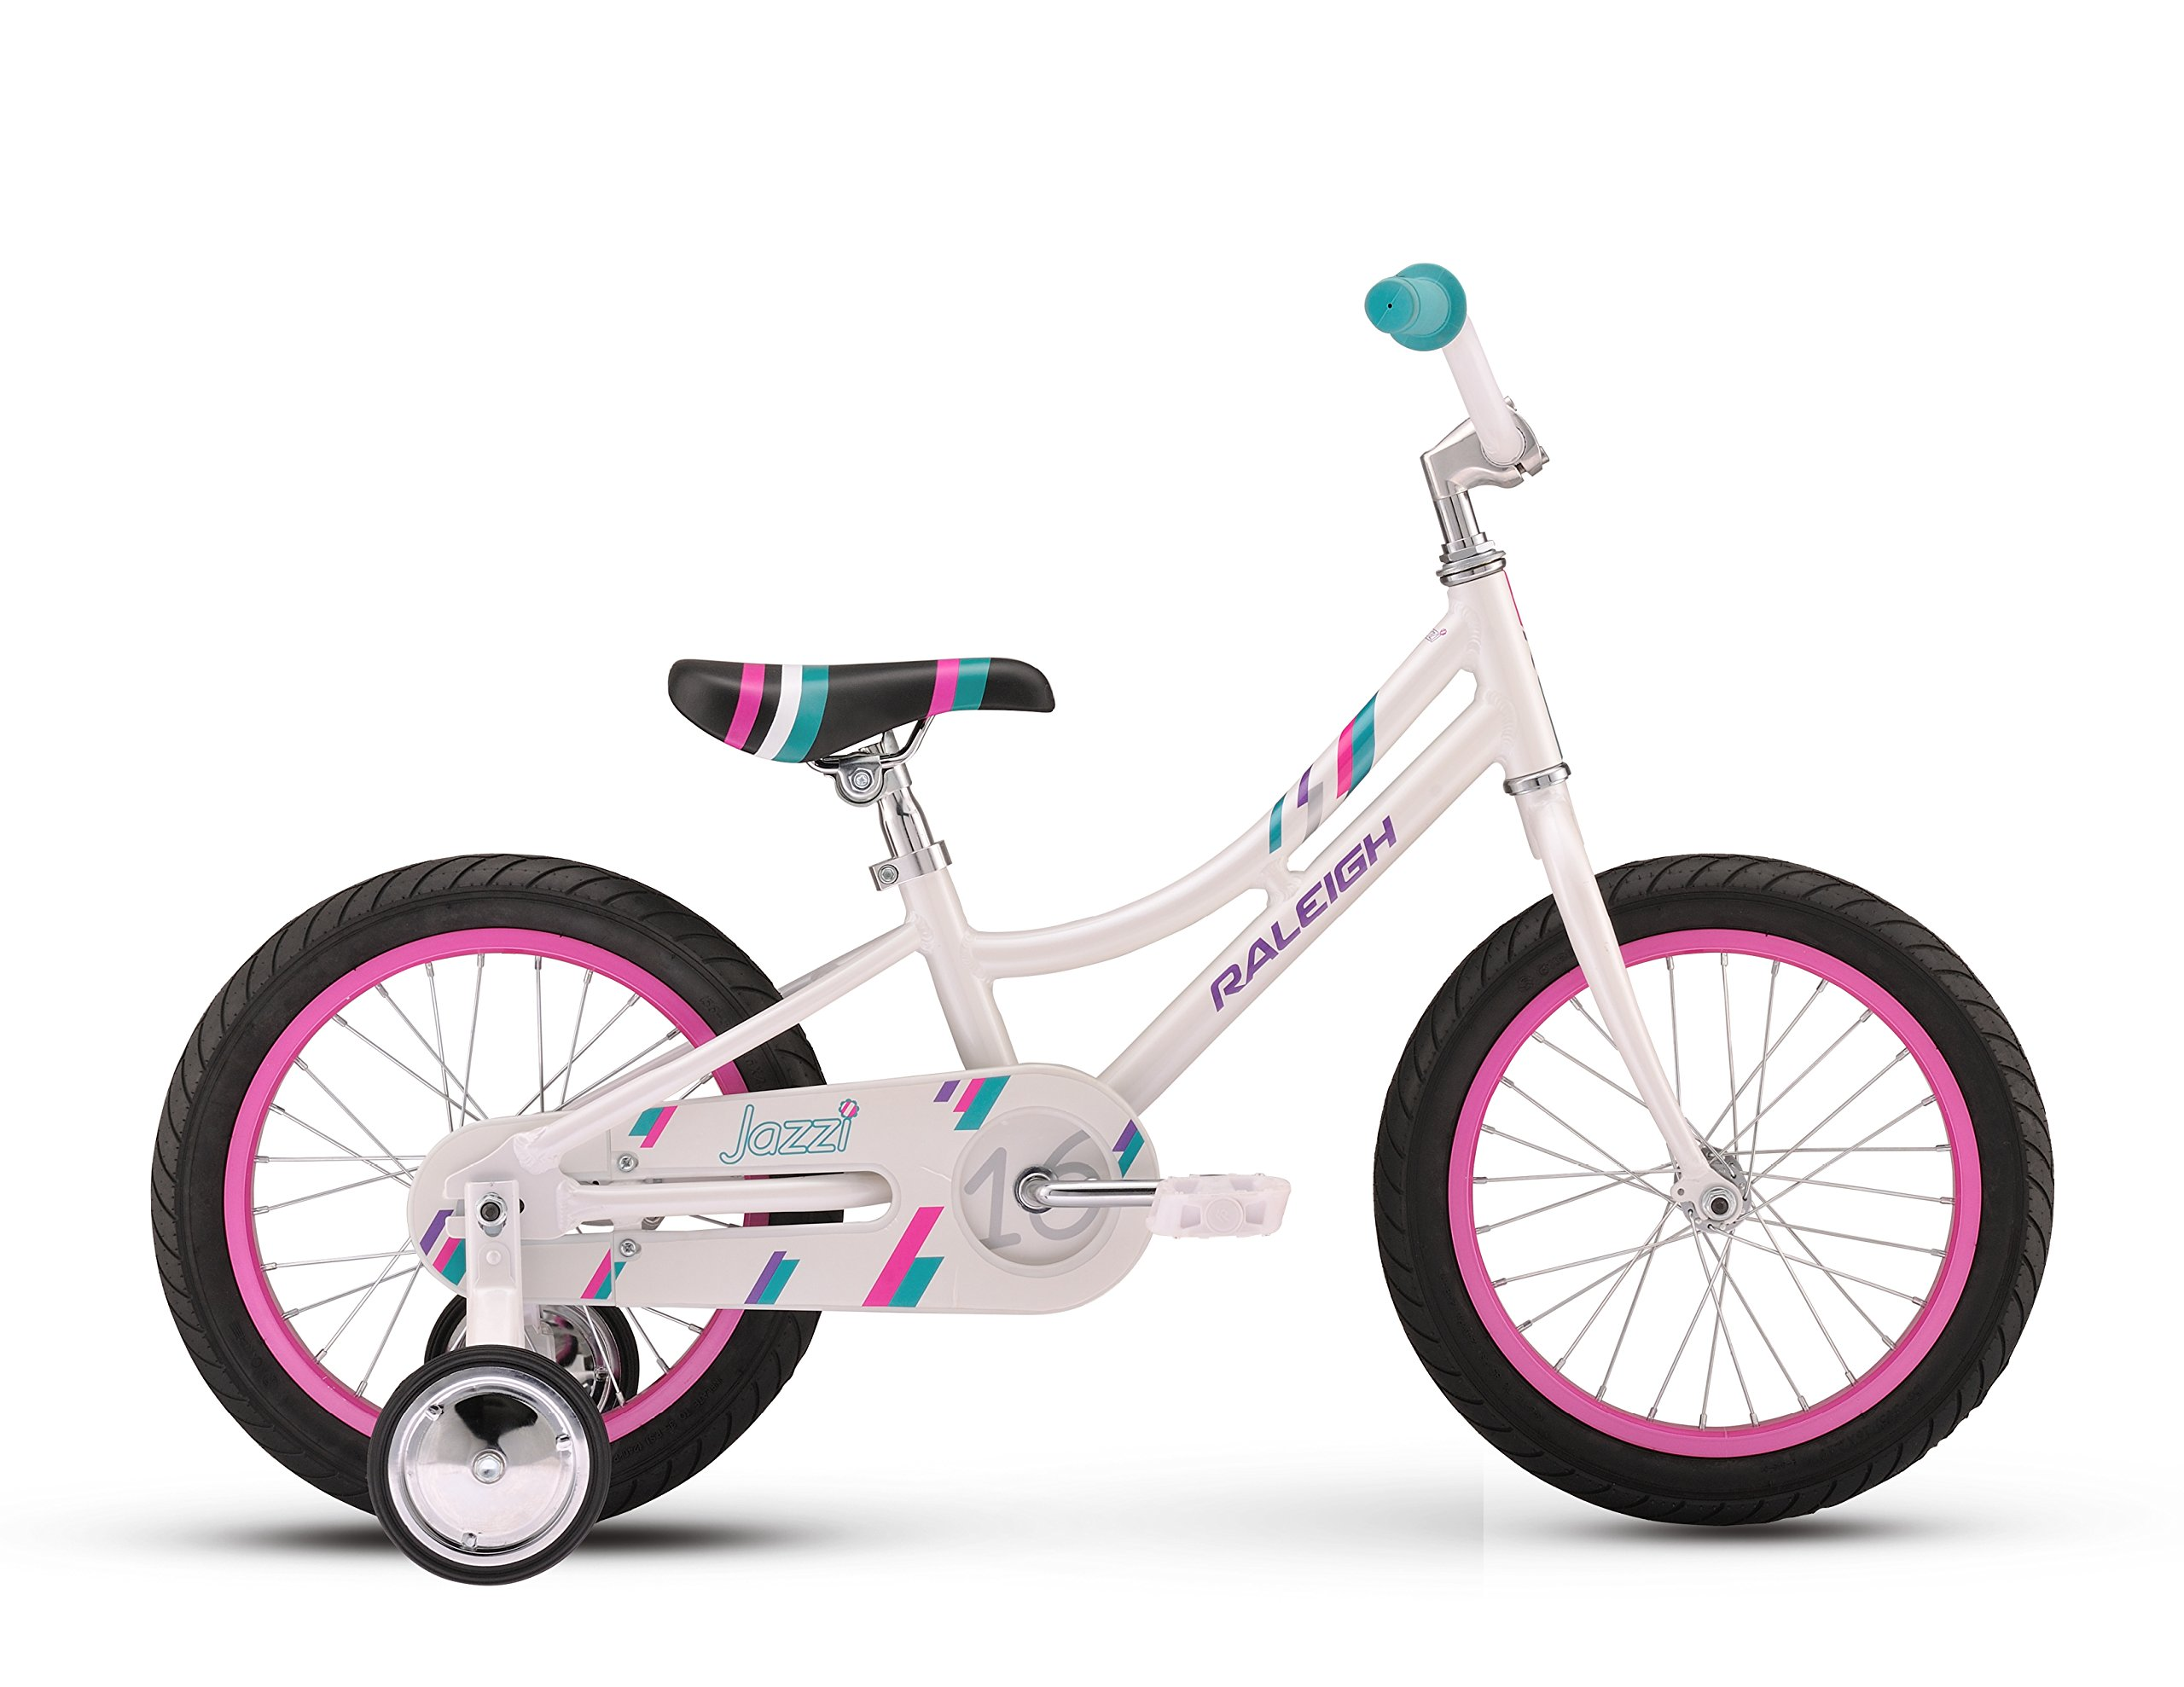 Raleigh Bikes Girls Jazzi 16 Bike, One Size, White by Raleigh Bikes